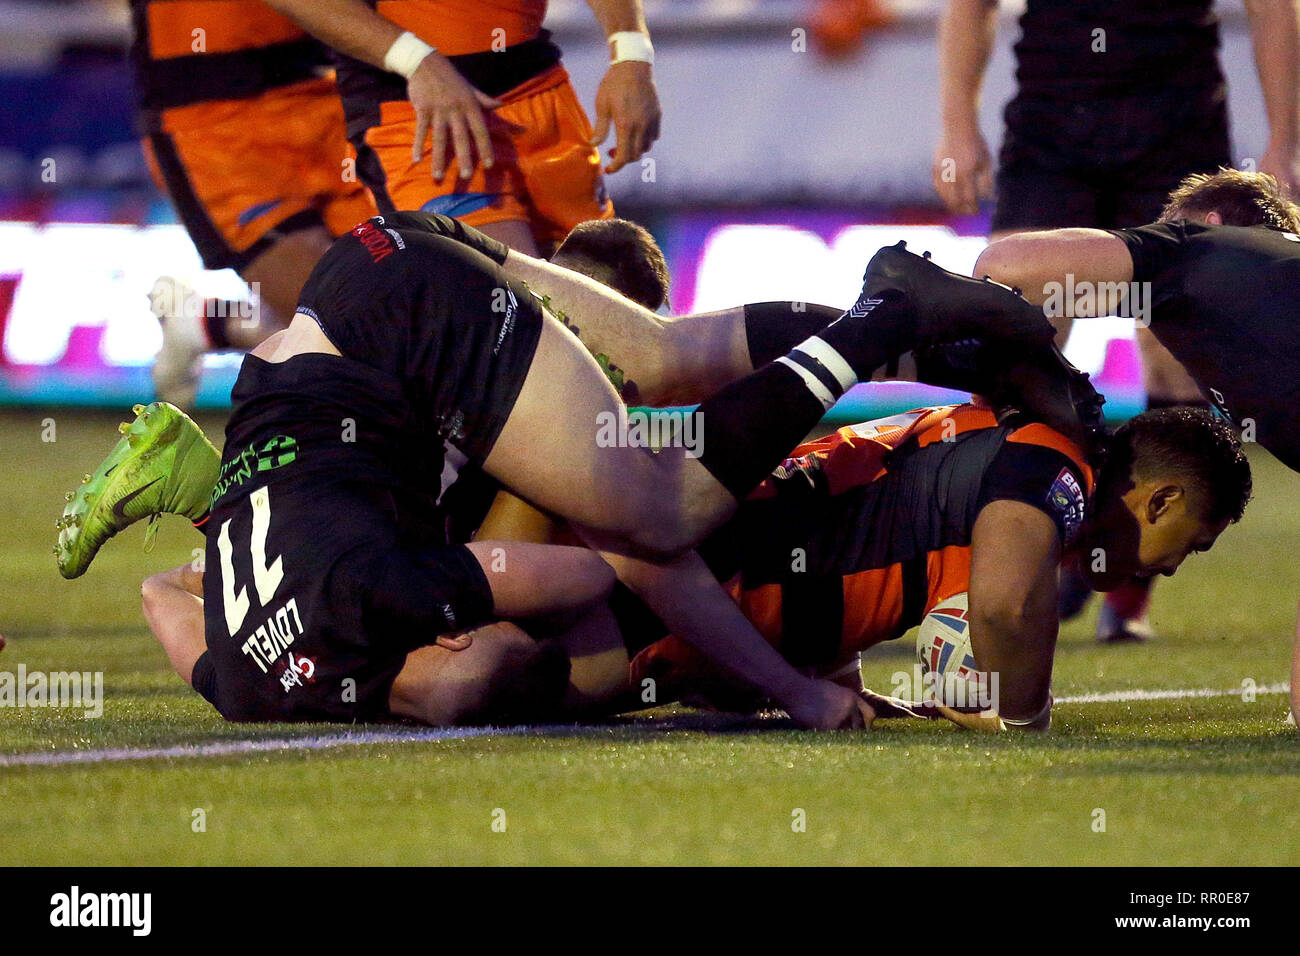 Castleford Tigers Junior Moors scores his side's 3rd try